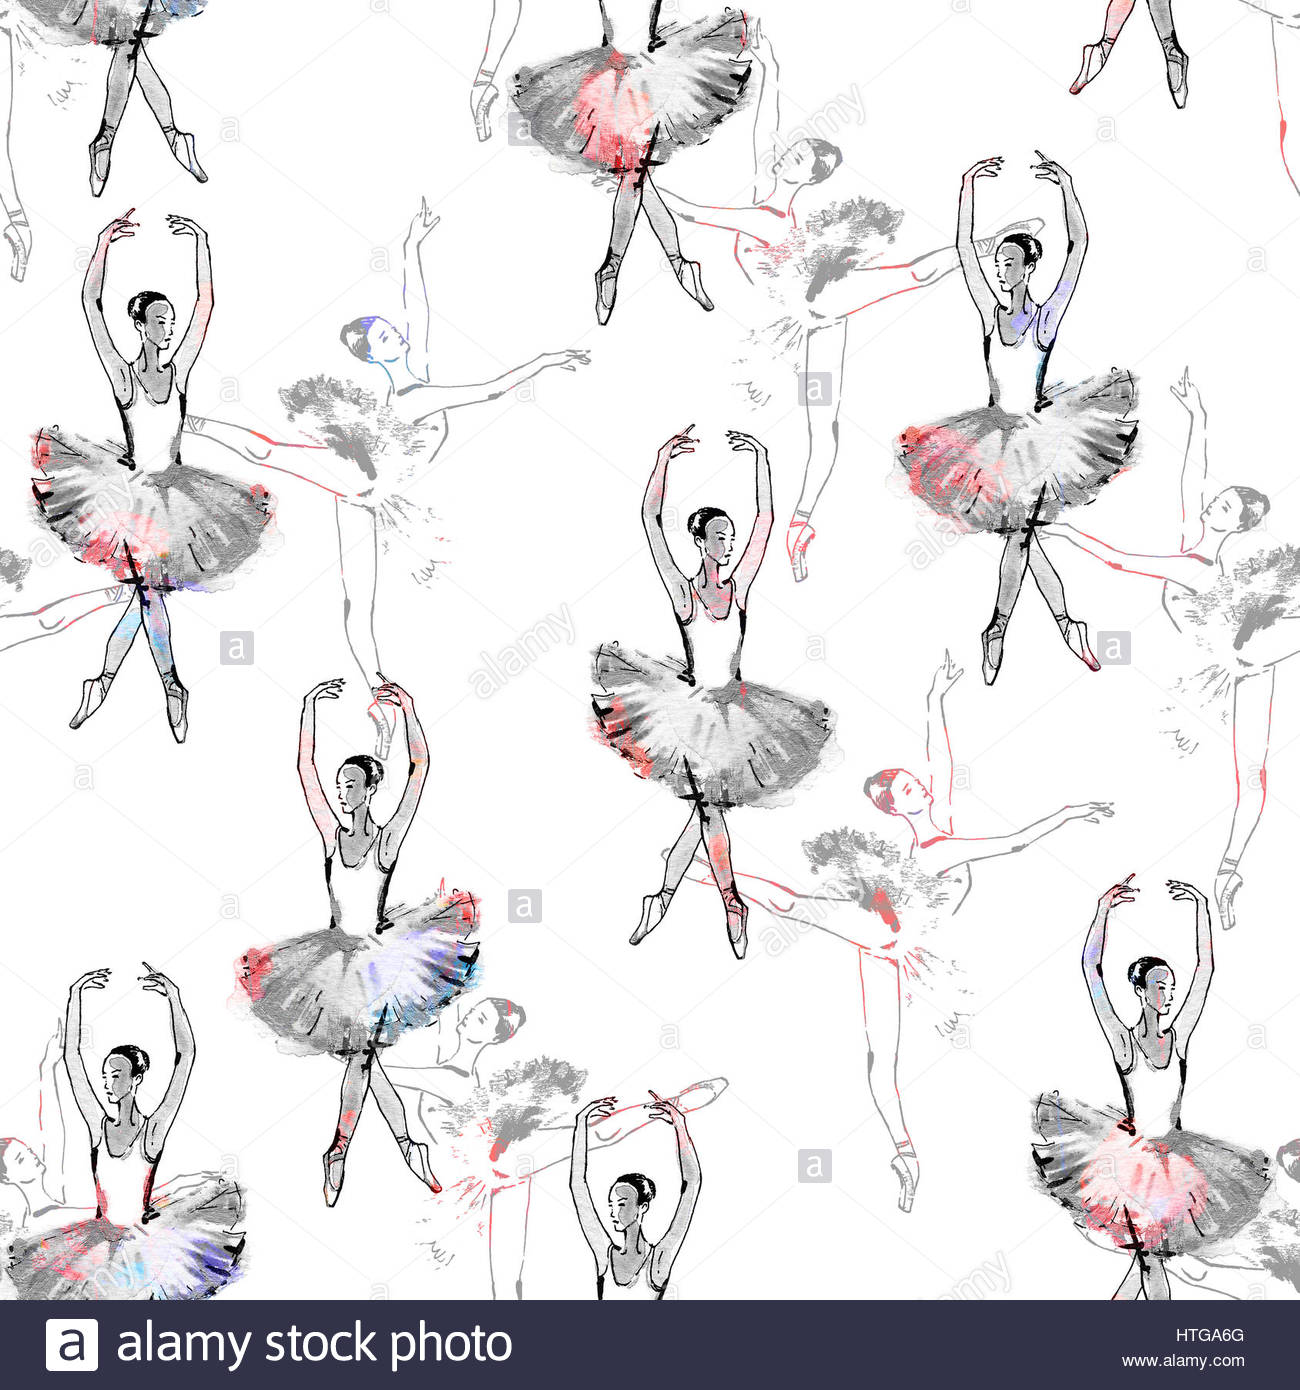 1300x1390 Seamless Pattern Of Ballet Dancers, Black And Silver Drawing Stock